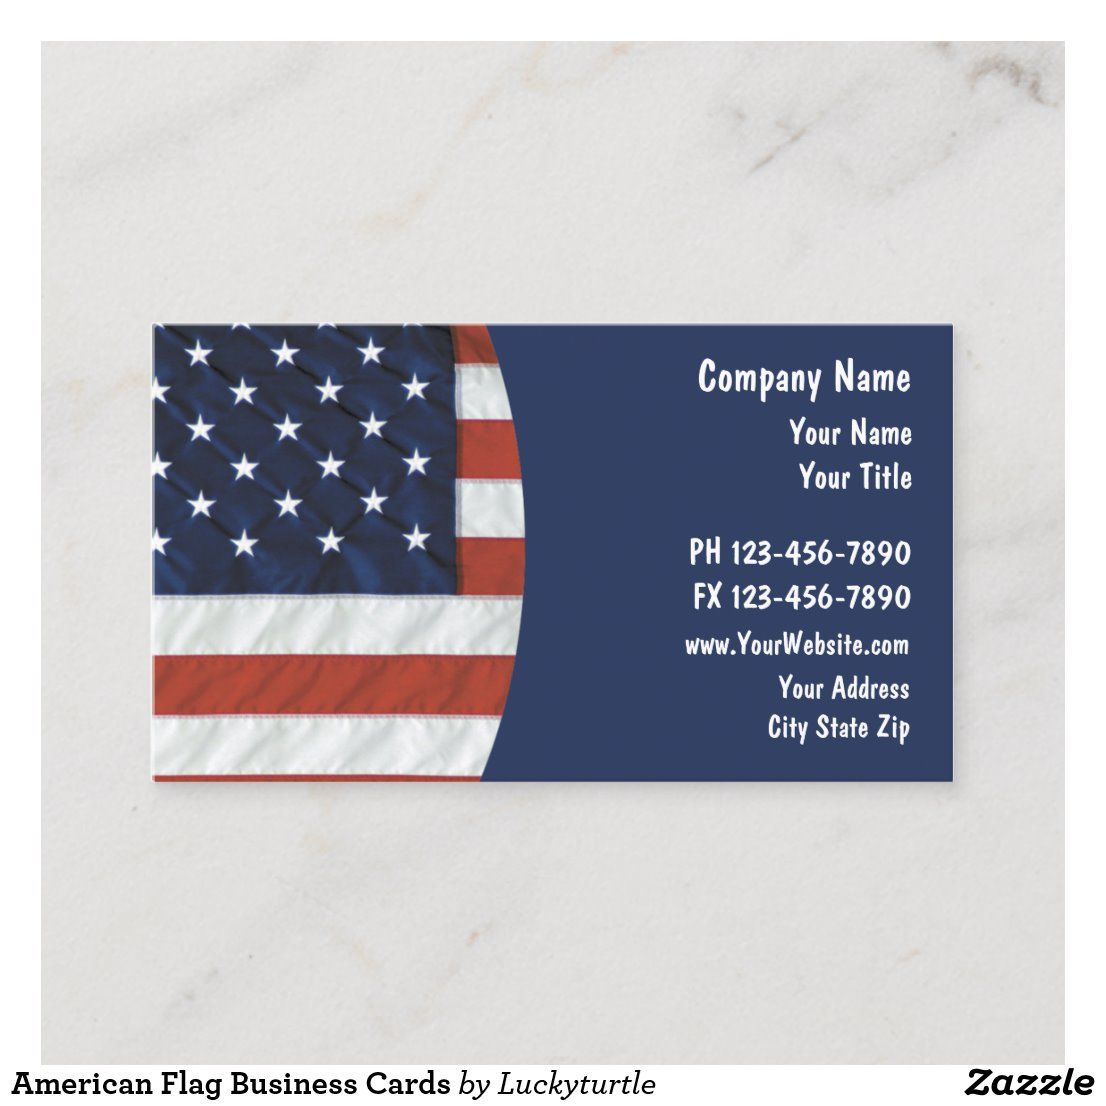 American Flag Business Cards Zazzle Com American Flag Business Card Template Design Printing Double Sided